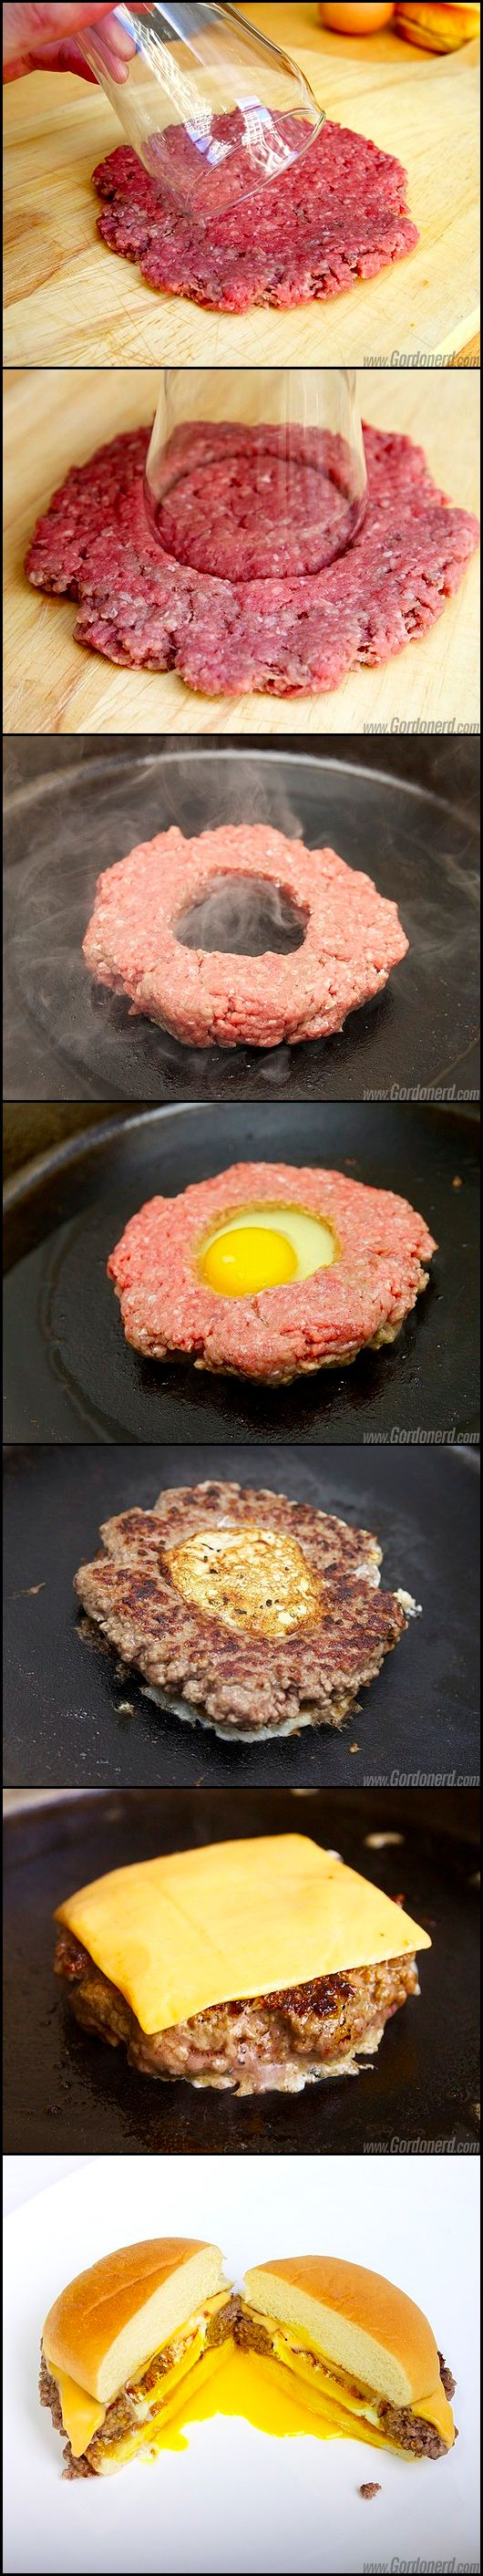 Use sausage and have the perfect breakfast sandwiches! def sounds worth trying